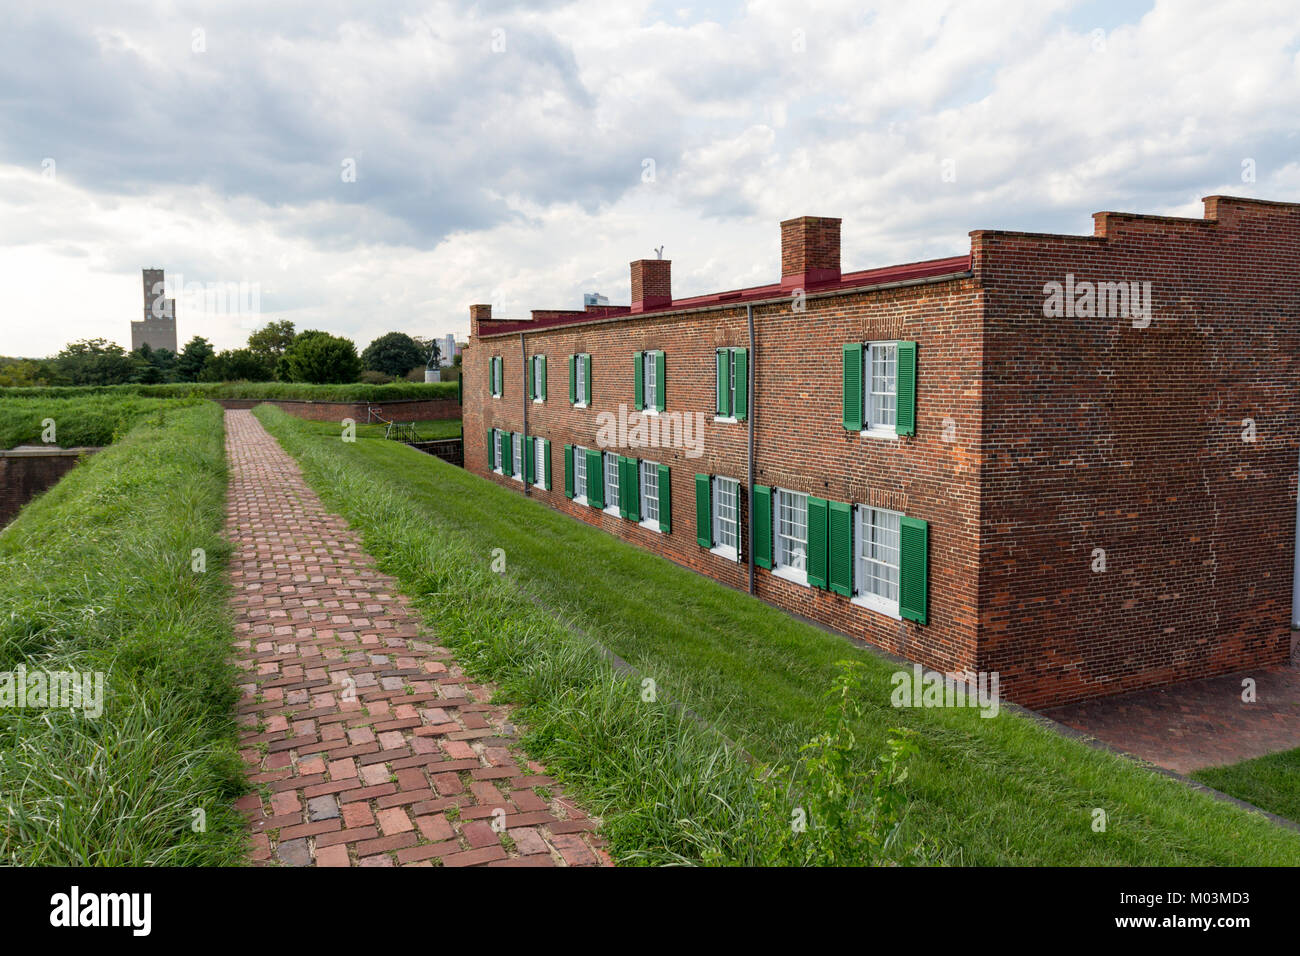 Barrack building inside Fort McHenry, Baltimore, Maryland, United States. - Stock Image